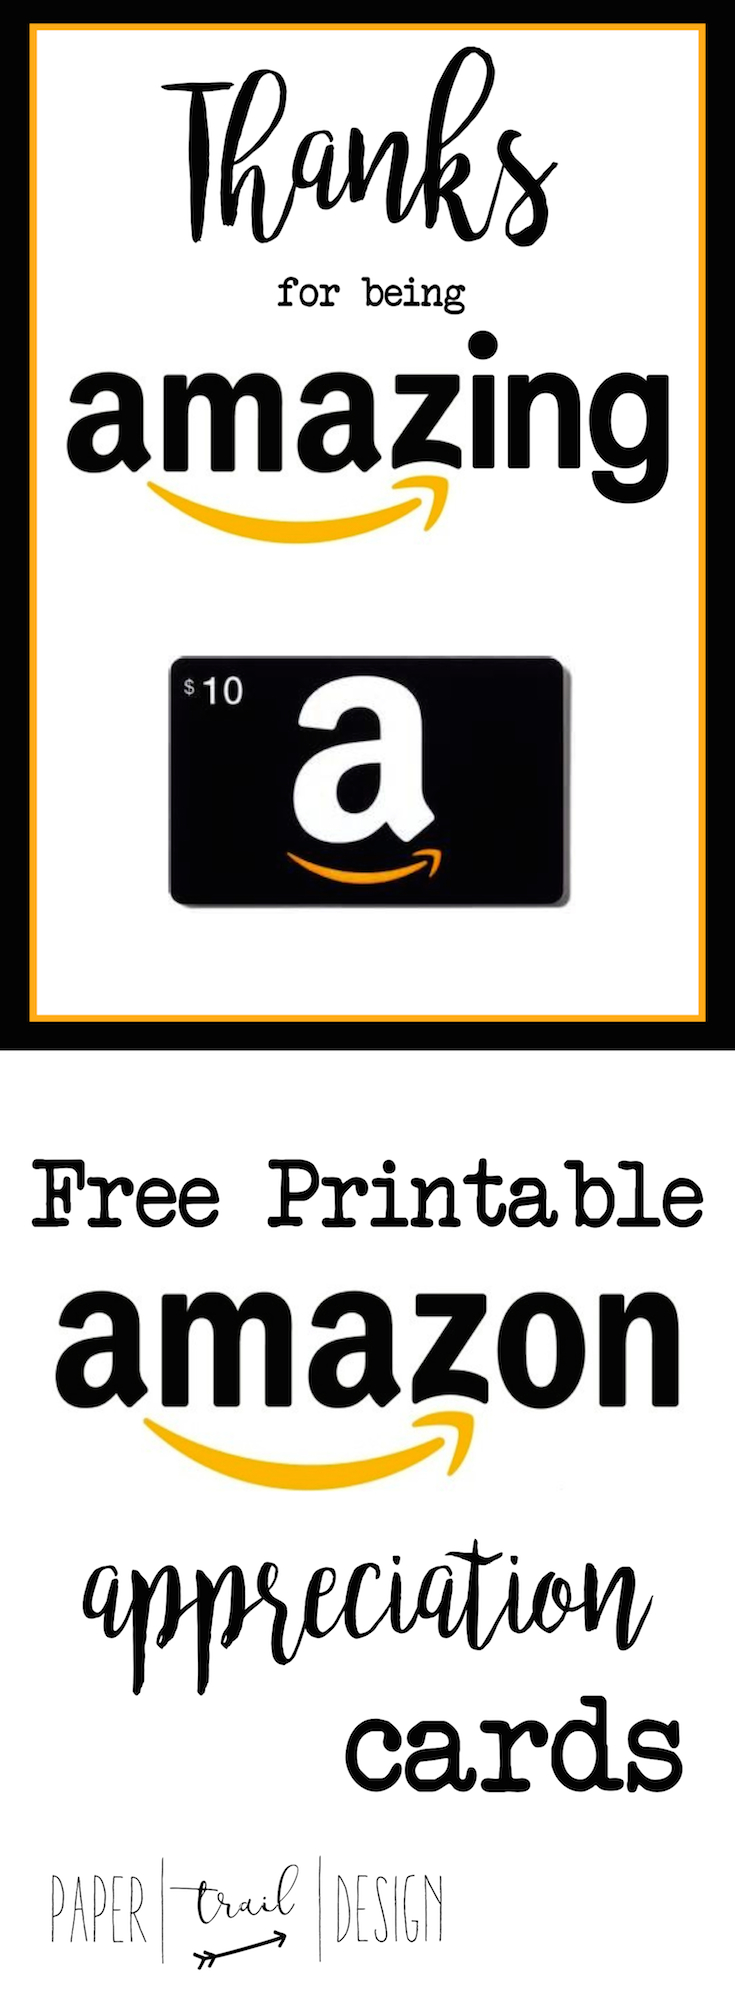 photograph regarding Amazon Gift Card Printable named Amazon reward card print at dwelling - Perfect comfort and ease meals inside of nyc